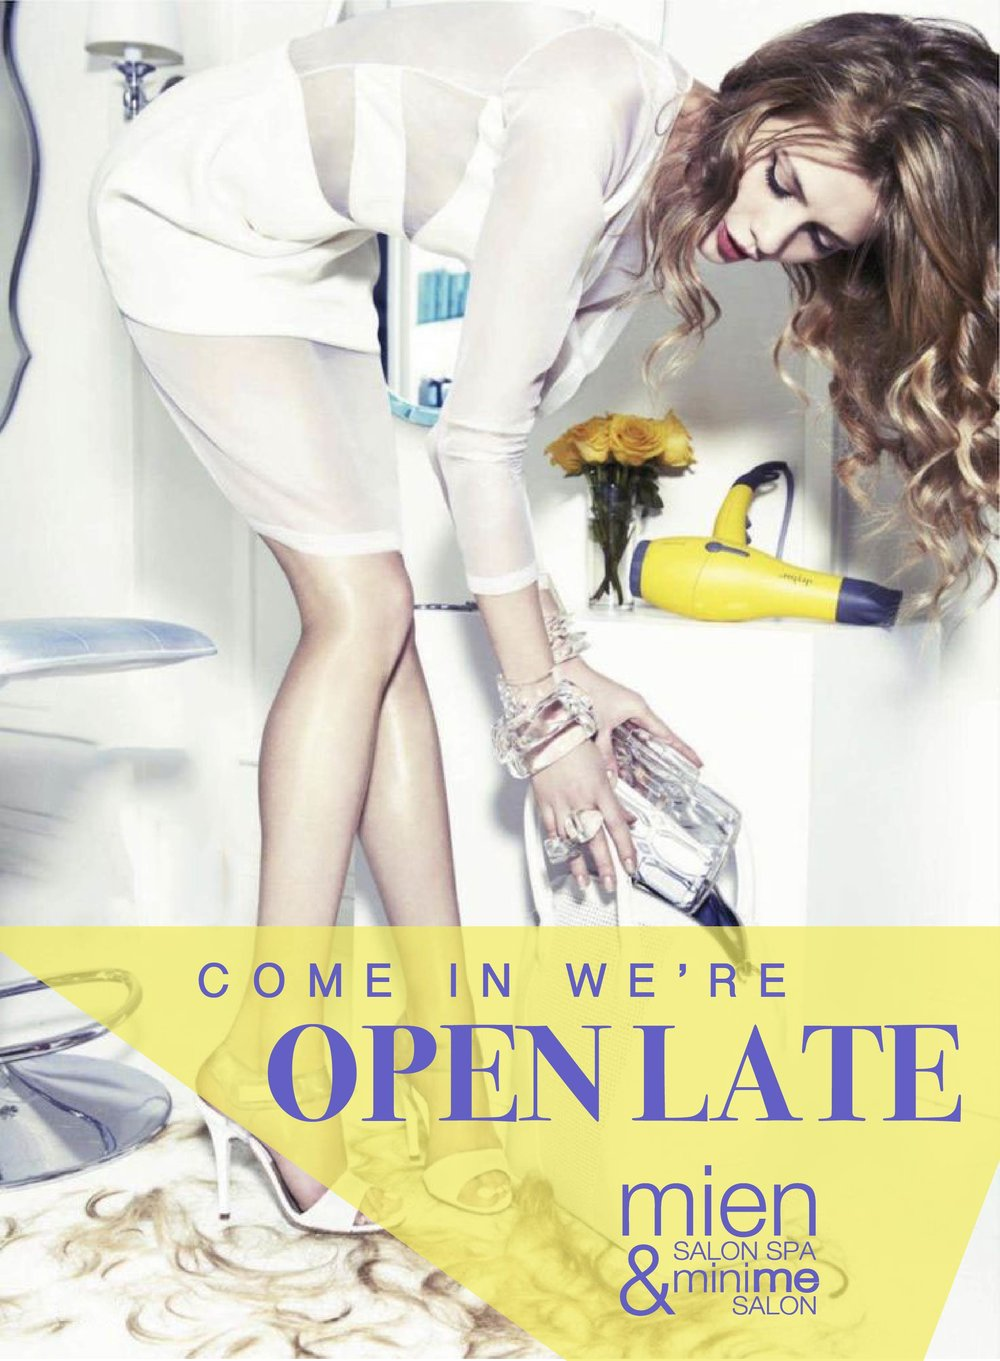 YES! we are extending our opening hours!! - Want to get your hair done or pamper yourself in our beautiful spa during the week...